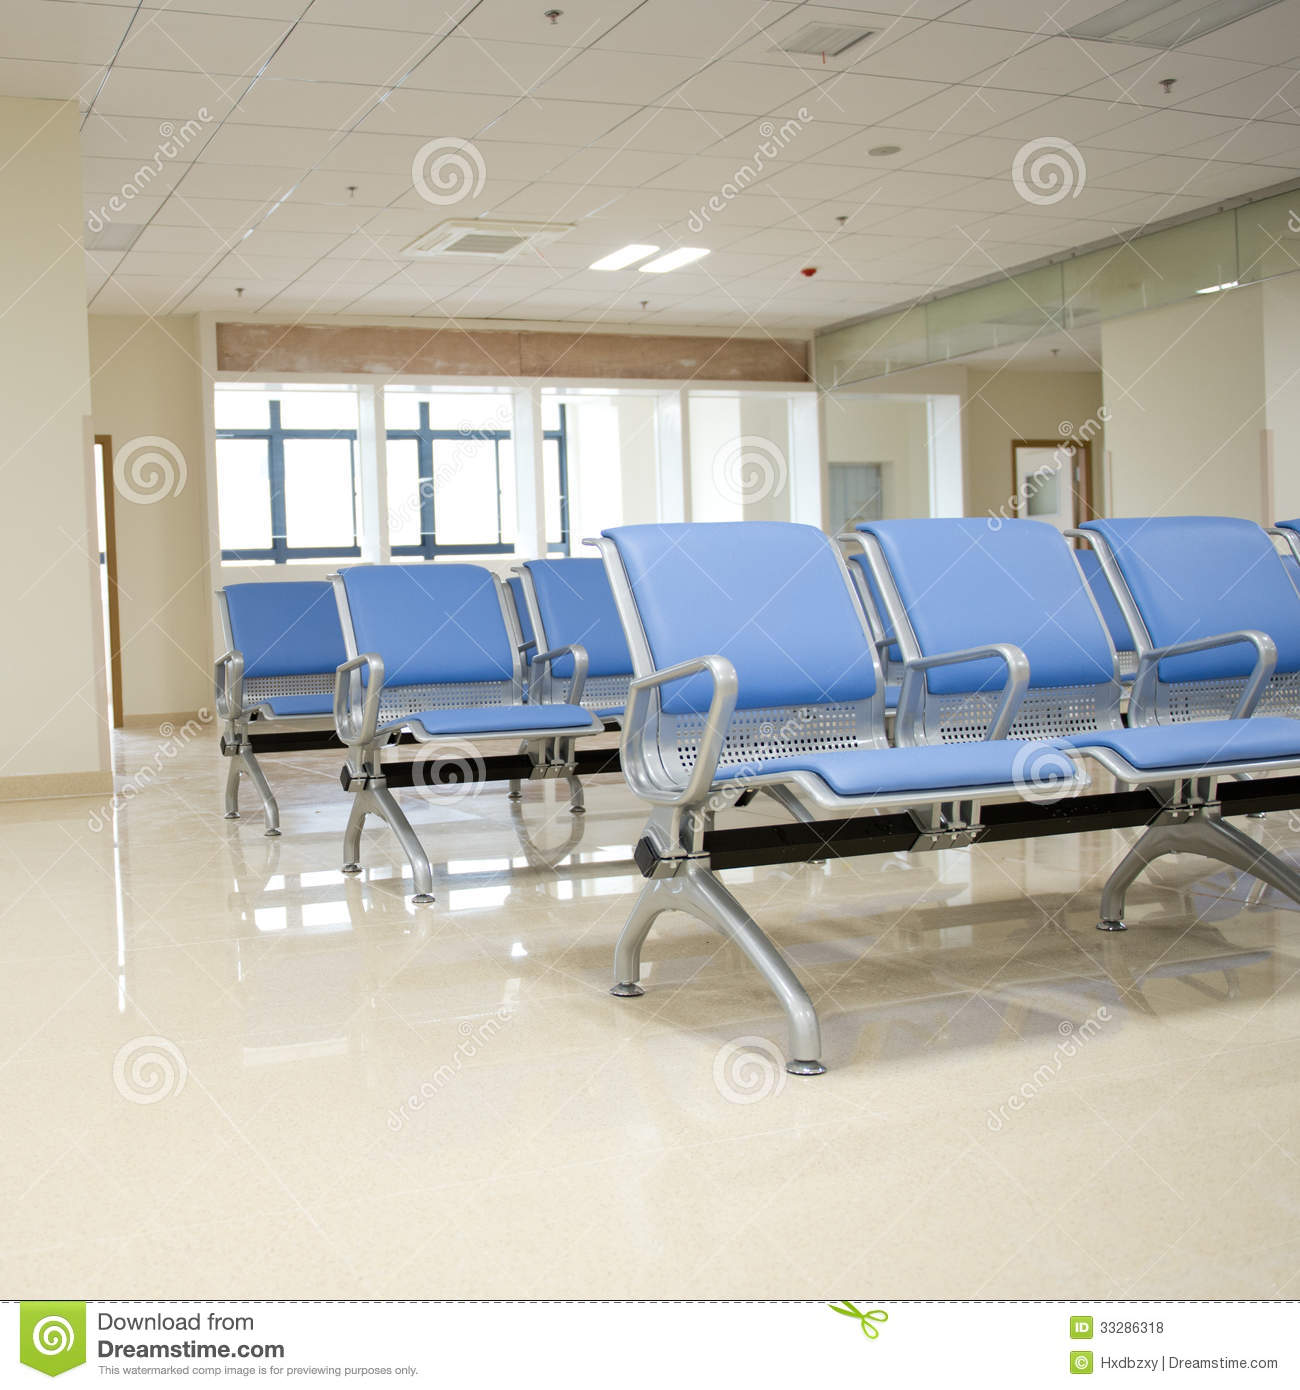 Hospital waiting room with empty chairs